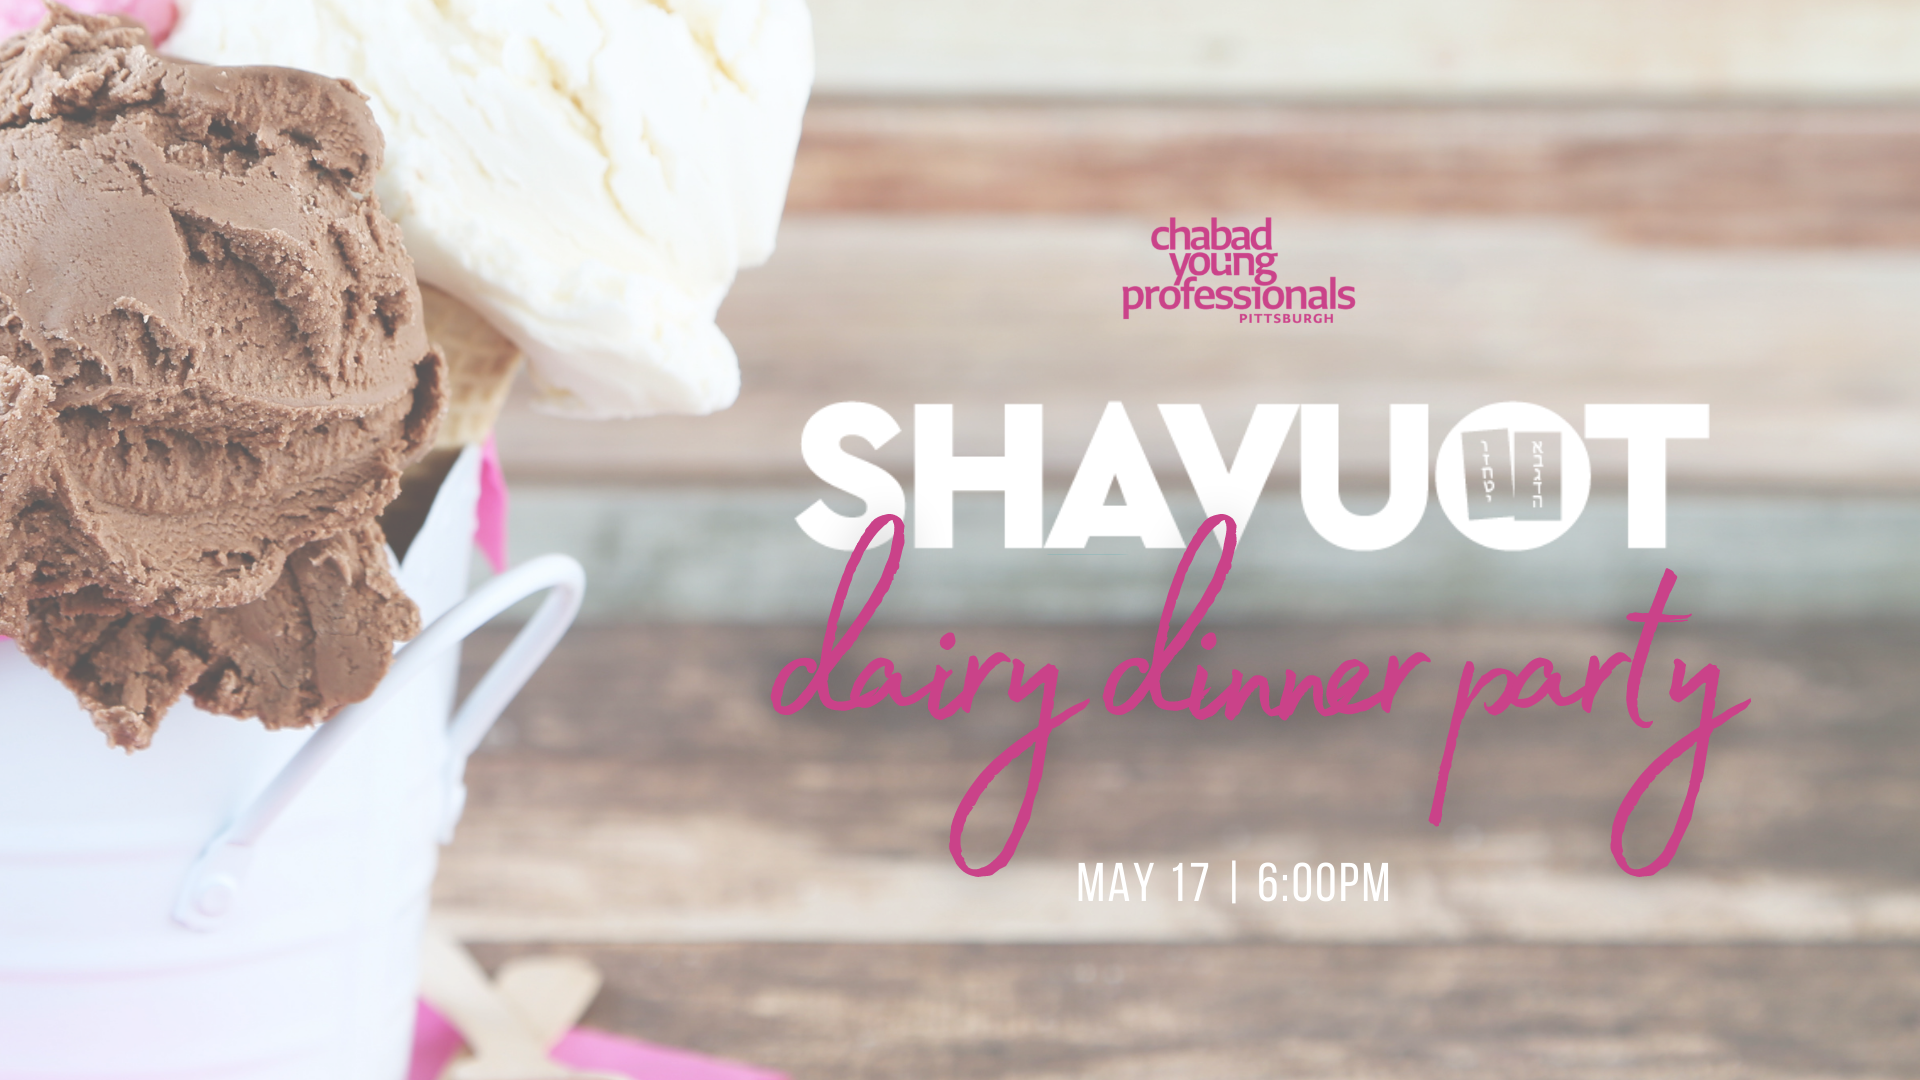 Shavuos%20Dinner%20Party%20FB%20Event.png